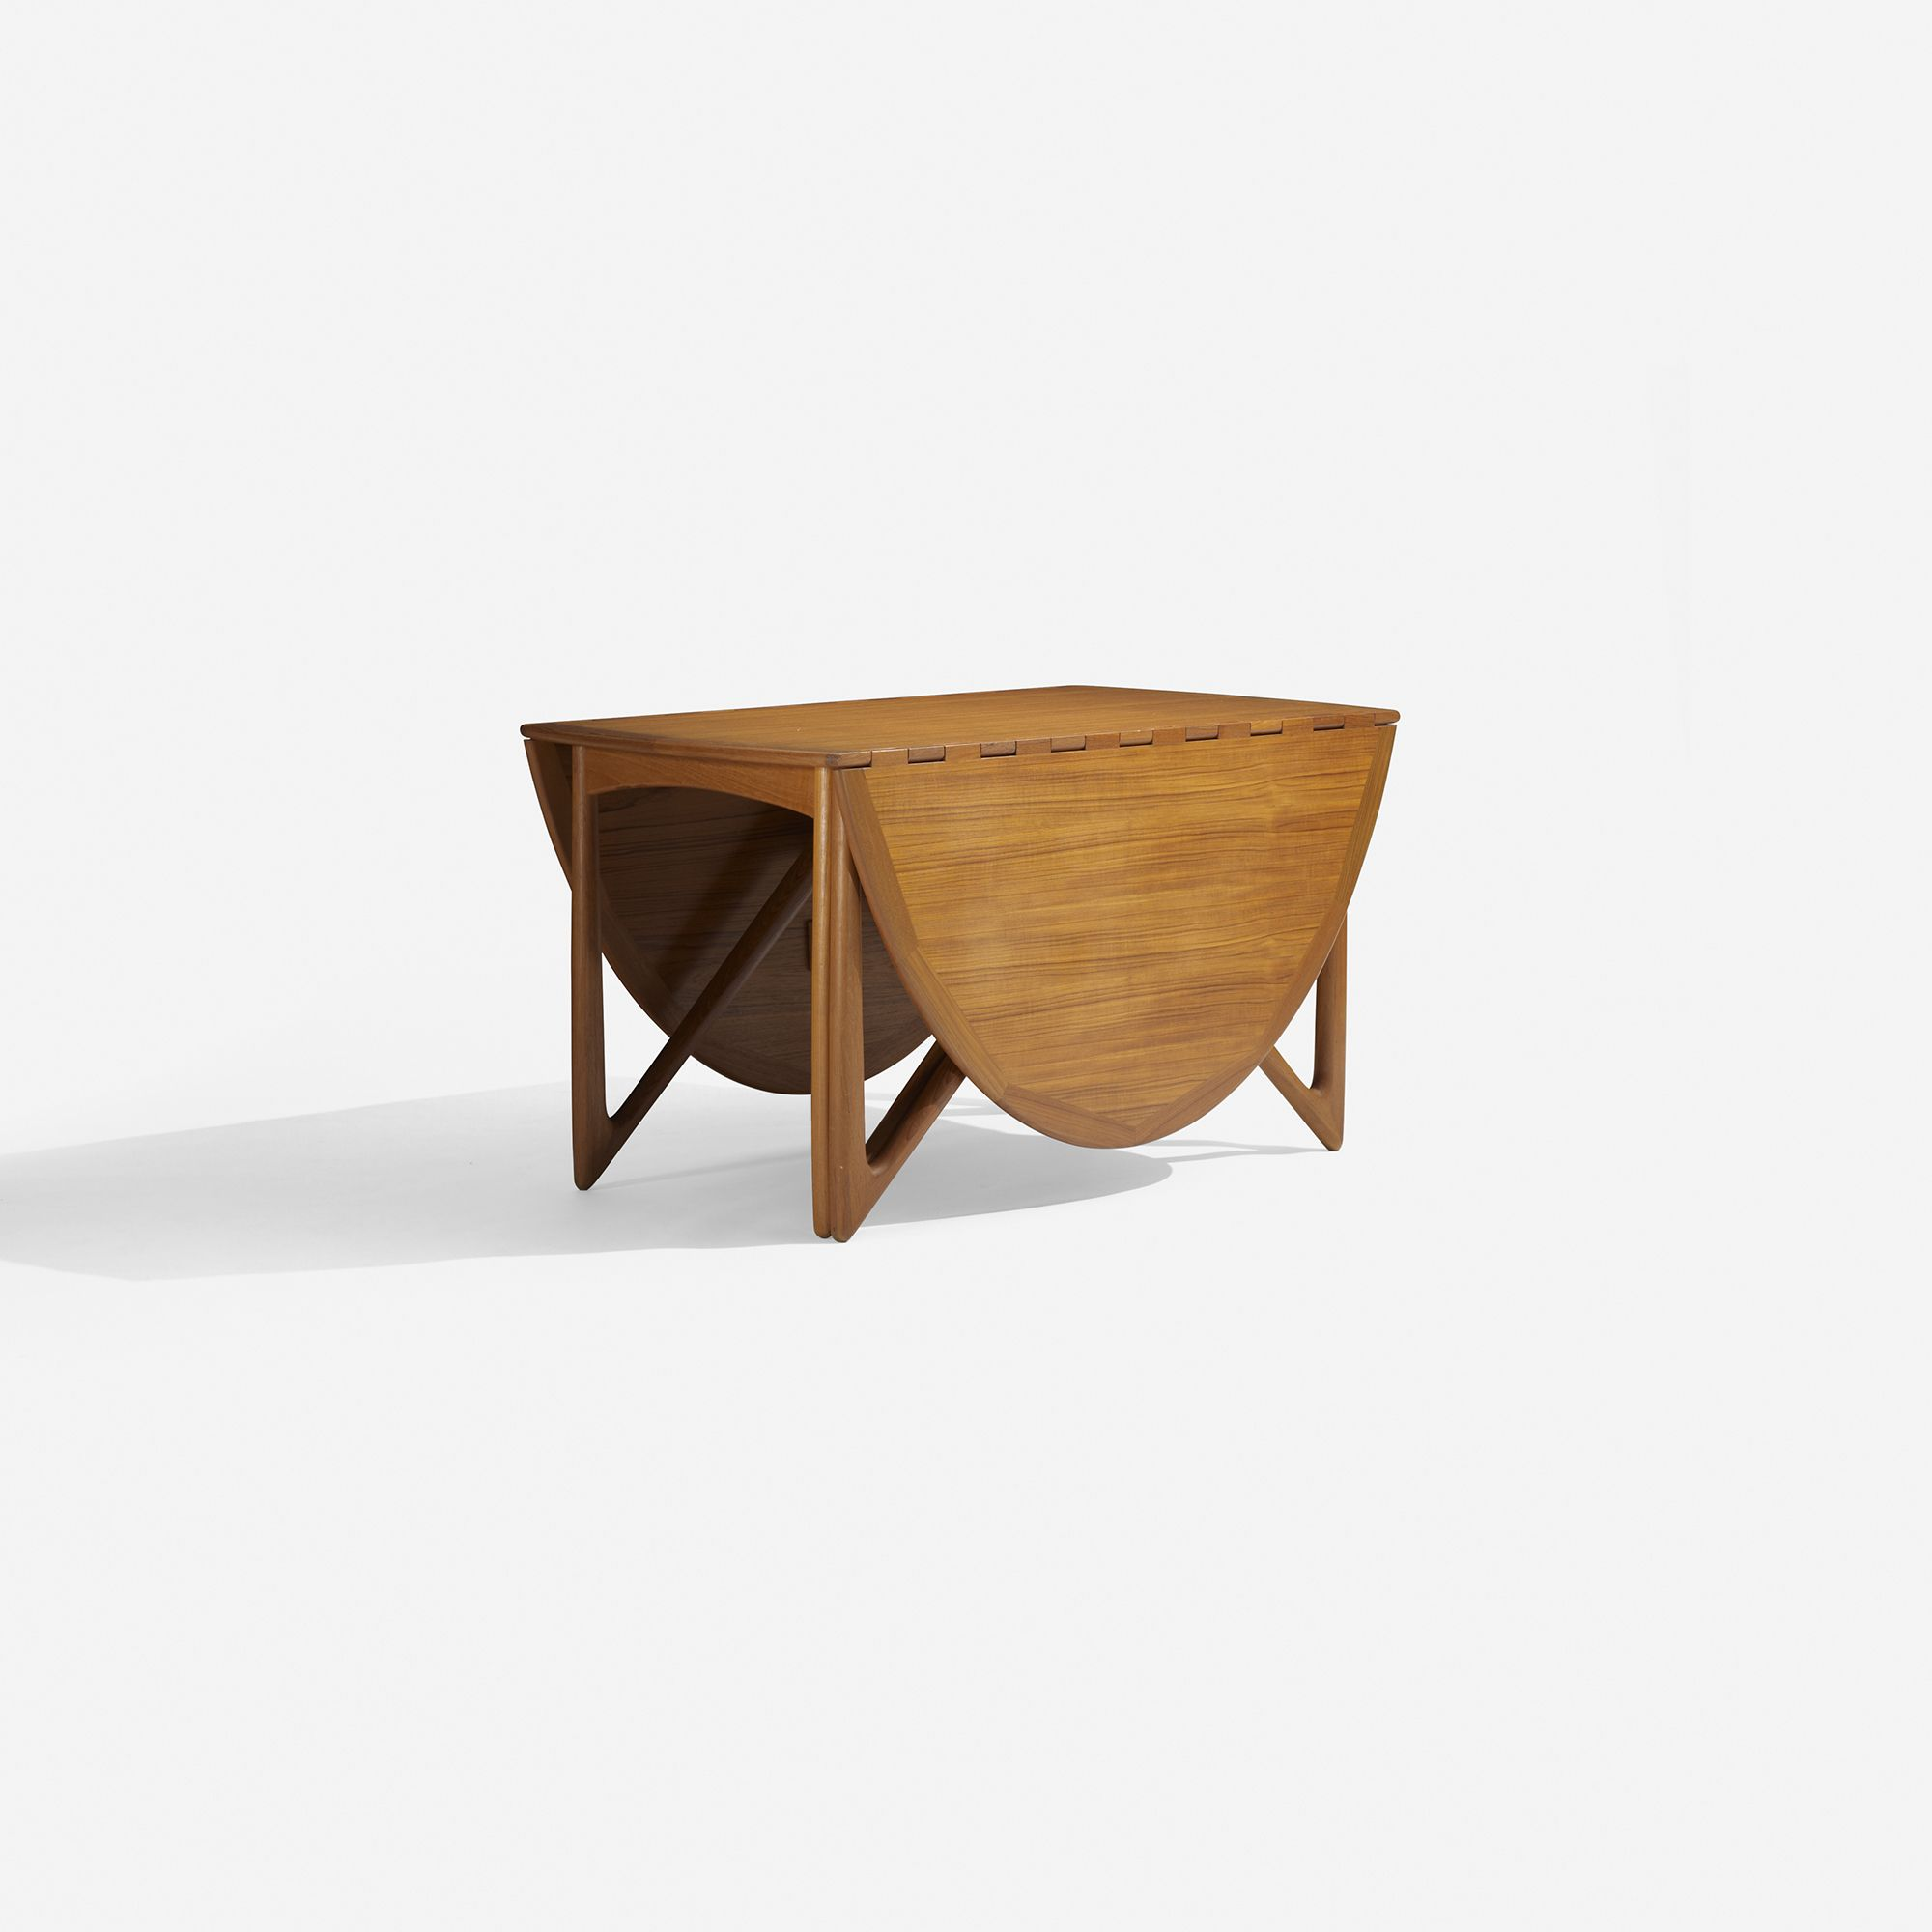 Lot 105: Kurt Ostervig. drop-leaf dining table. c. 1960, teak. 77 w x 51 d x 28½ h in. result: $2,500. estimate: $3,000–5,000. Table features two 24-inch drop-leaves; table measures twenty-nine inches when folded.